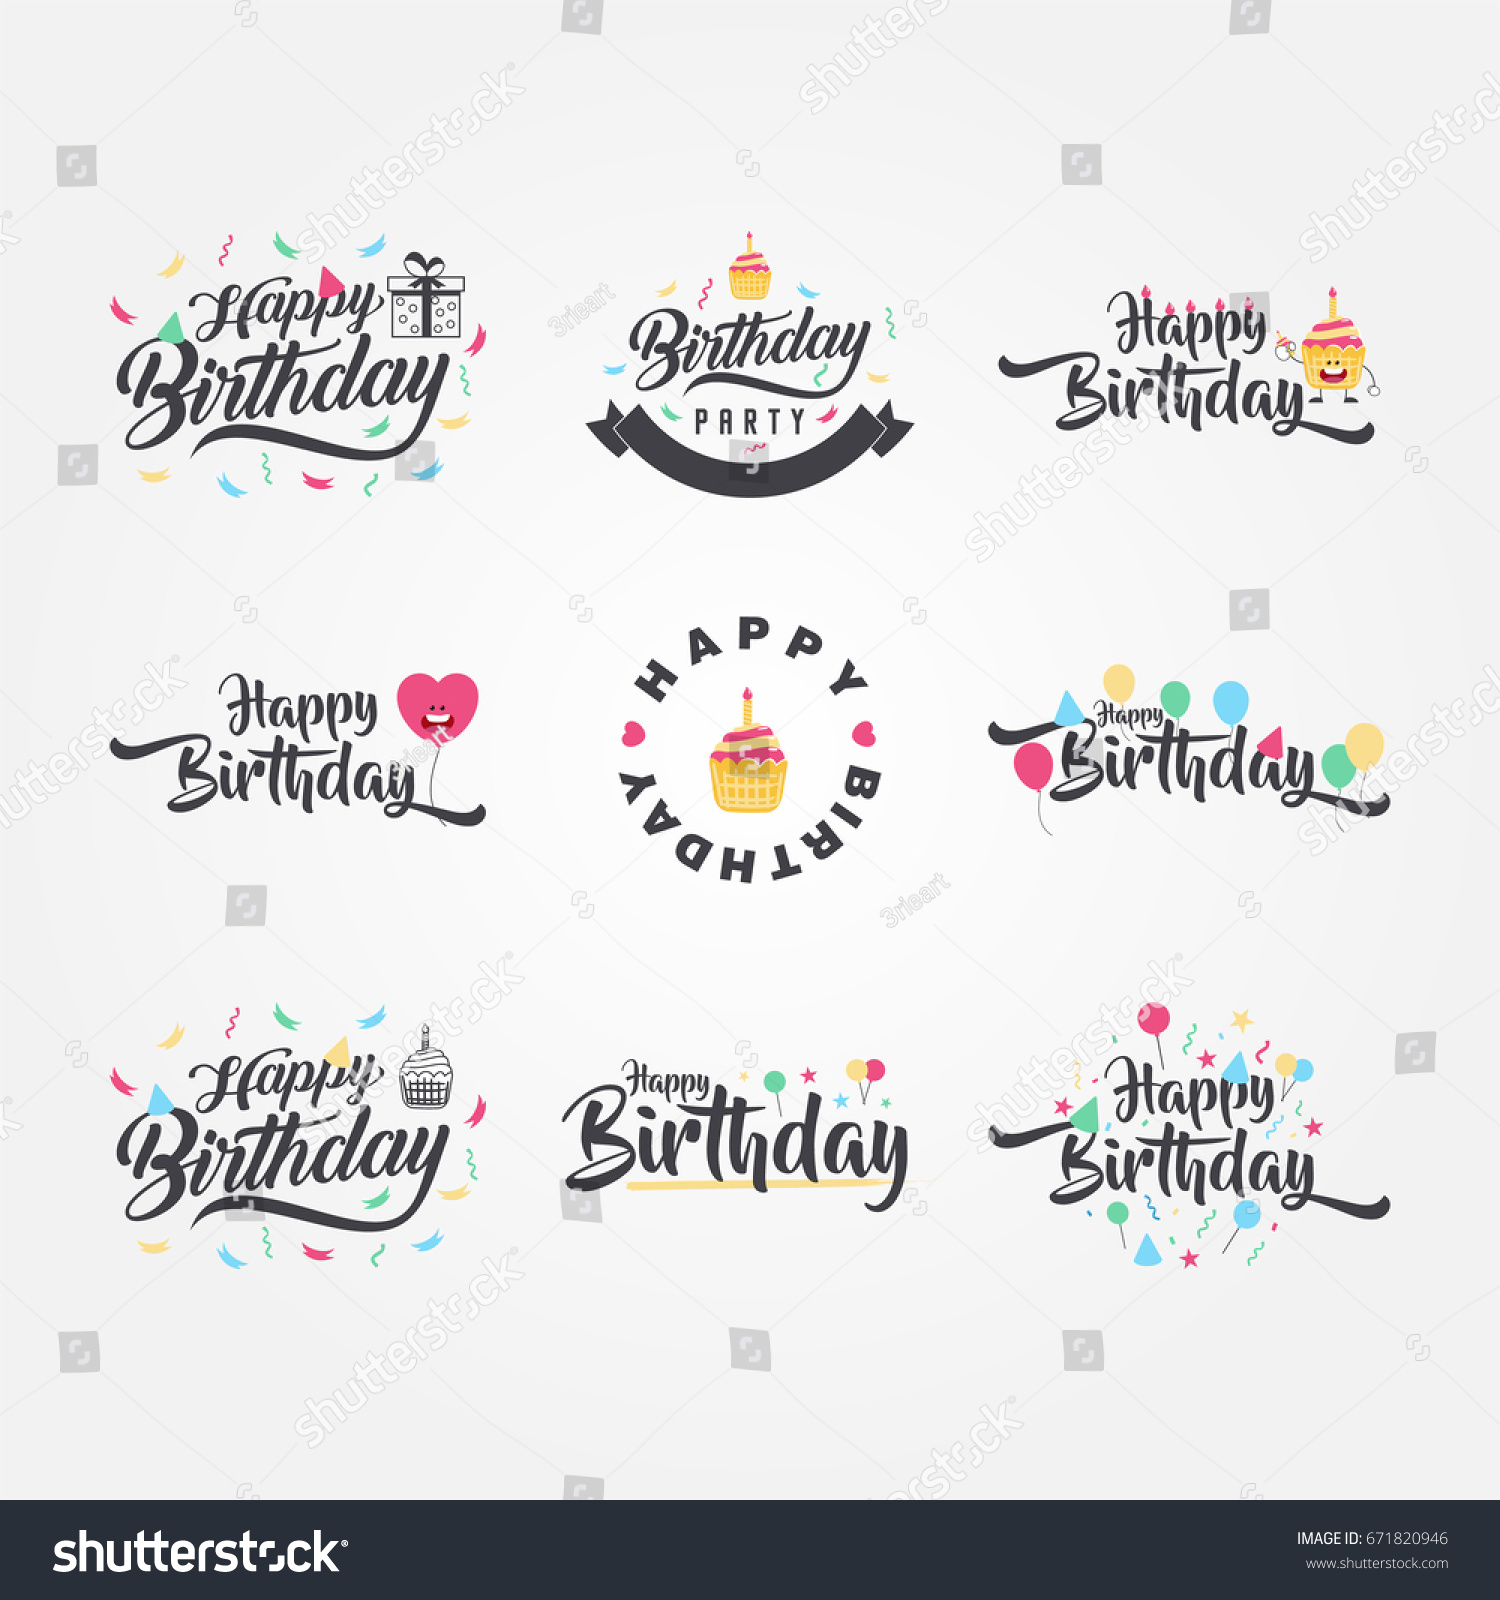 Cute And Funny Happy Birthday Typography Calligraphy Vector Design For Greeting Cards Poster